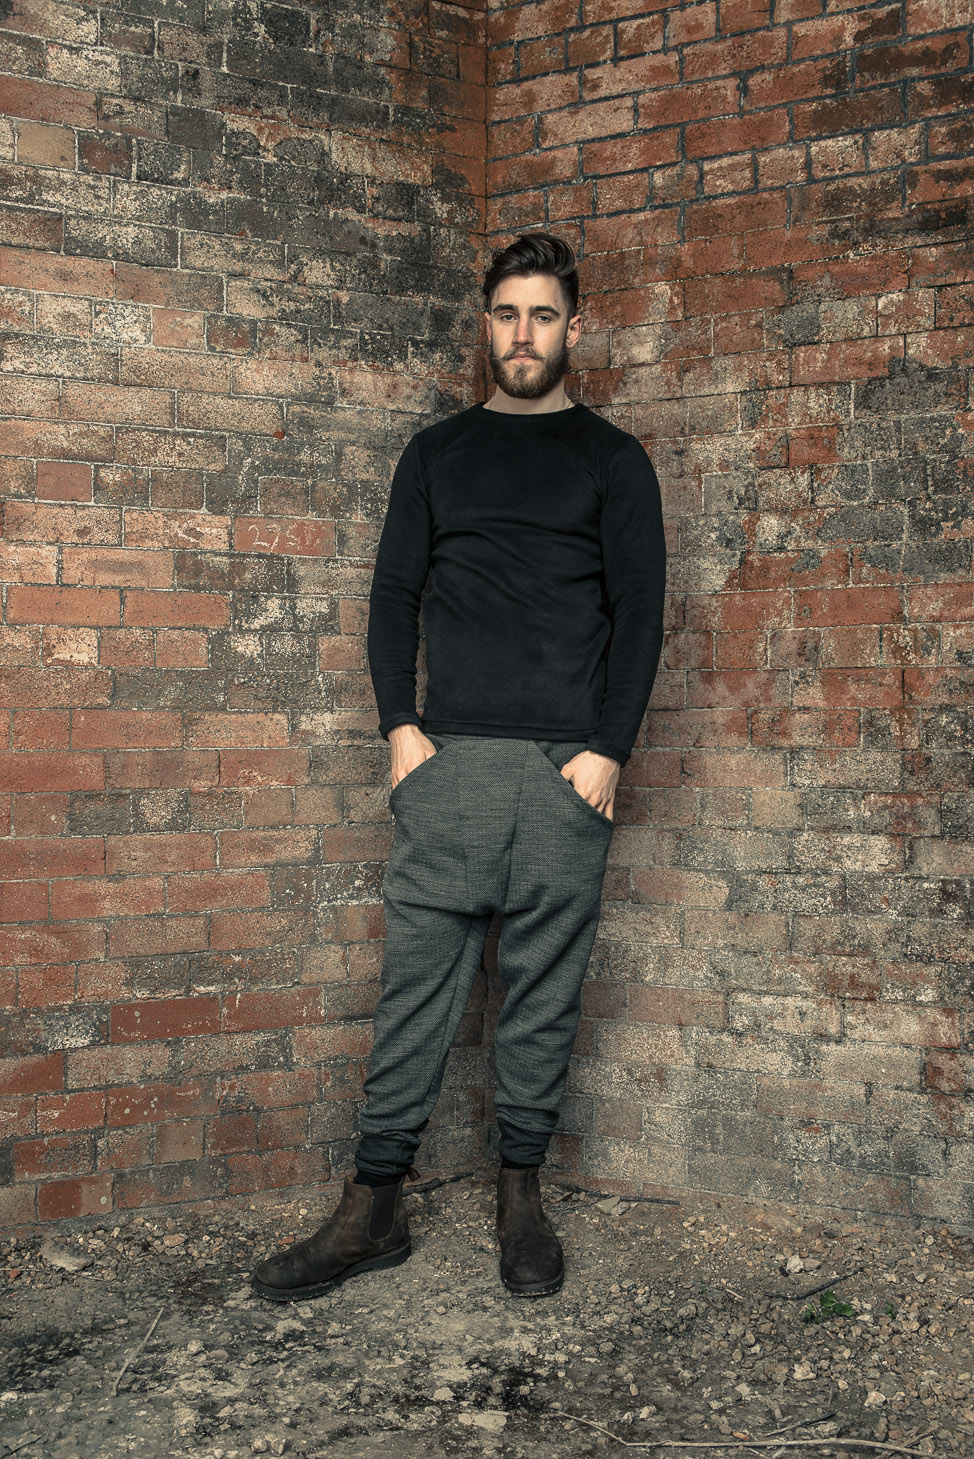 zaramia-ava-zaramiaava-leeds-fashion-designer-ethical-sustainable-tailored-minimalist-fitted-versatile-drape-kobe-grey-tshirt-top-hareem-trousers-black-grey-texture-styling-menswear-model-28